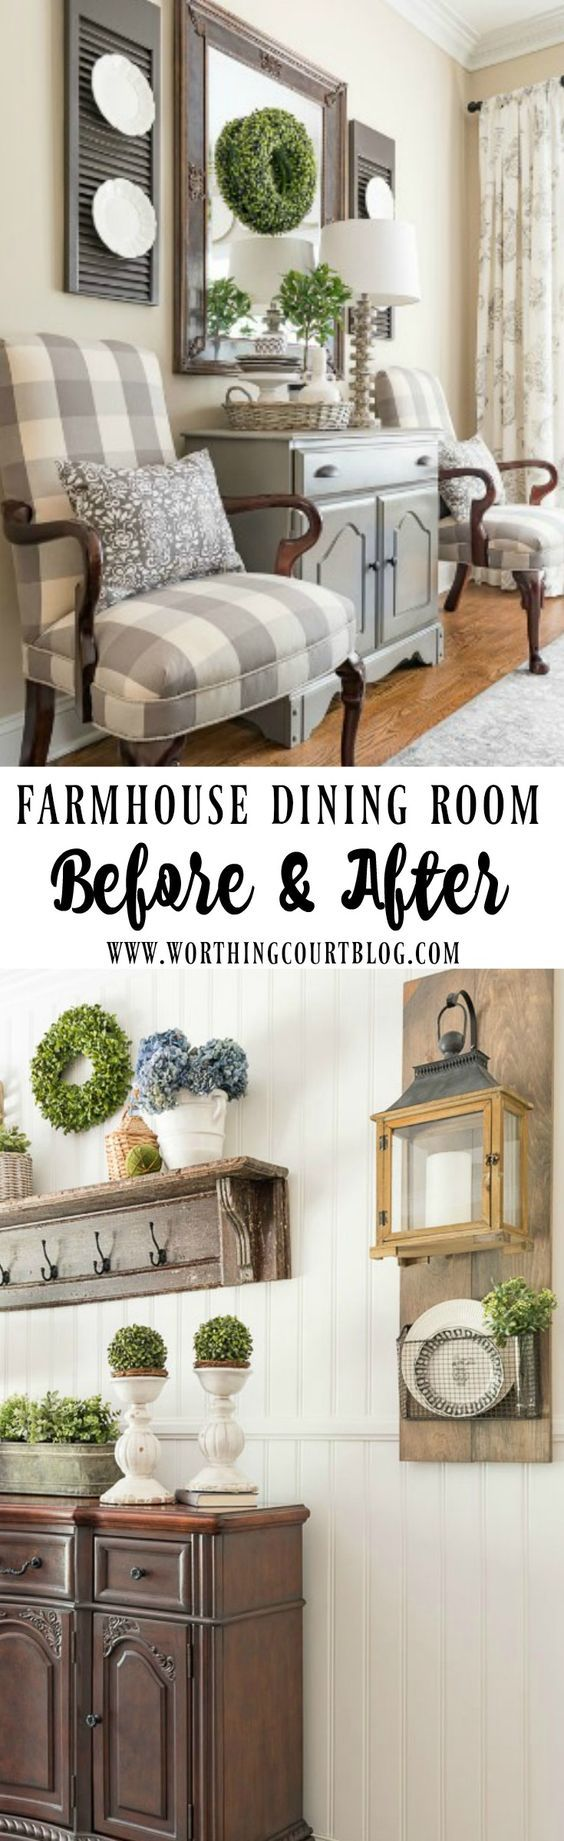 Best 25+ Dining Rooms Ideas On Pinterest | Dining Room Design, Dining Room  Light Fixtures And Dining Room Lighting